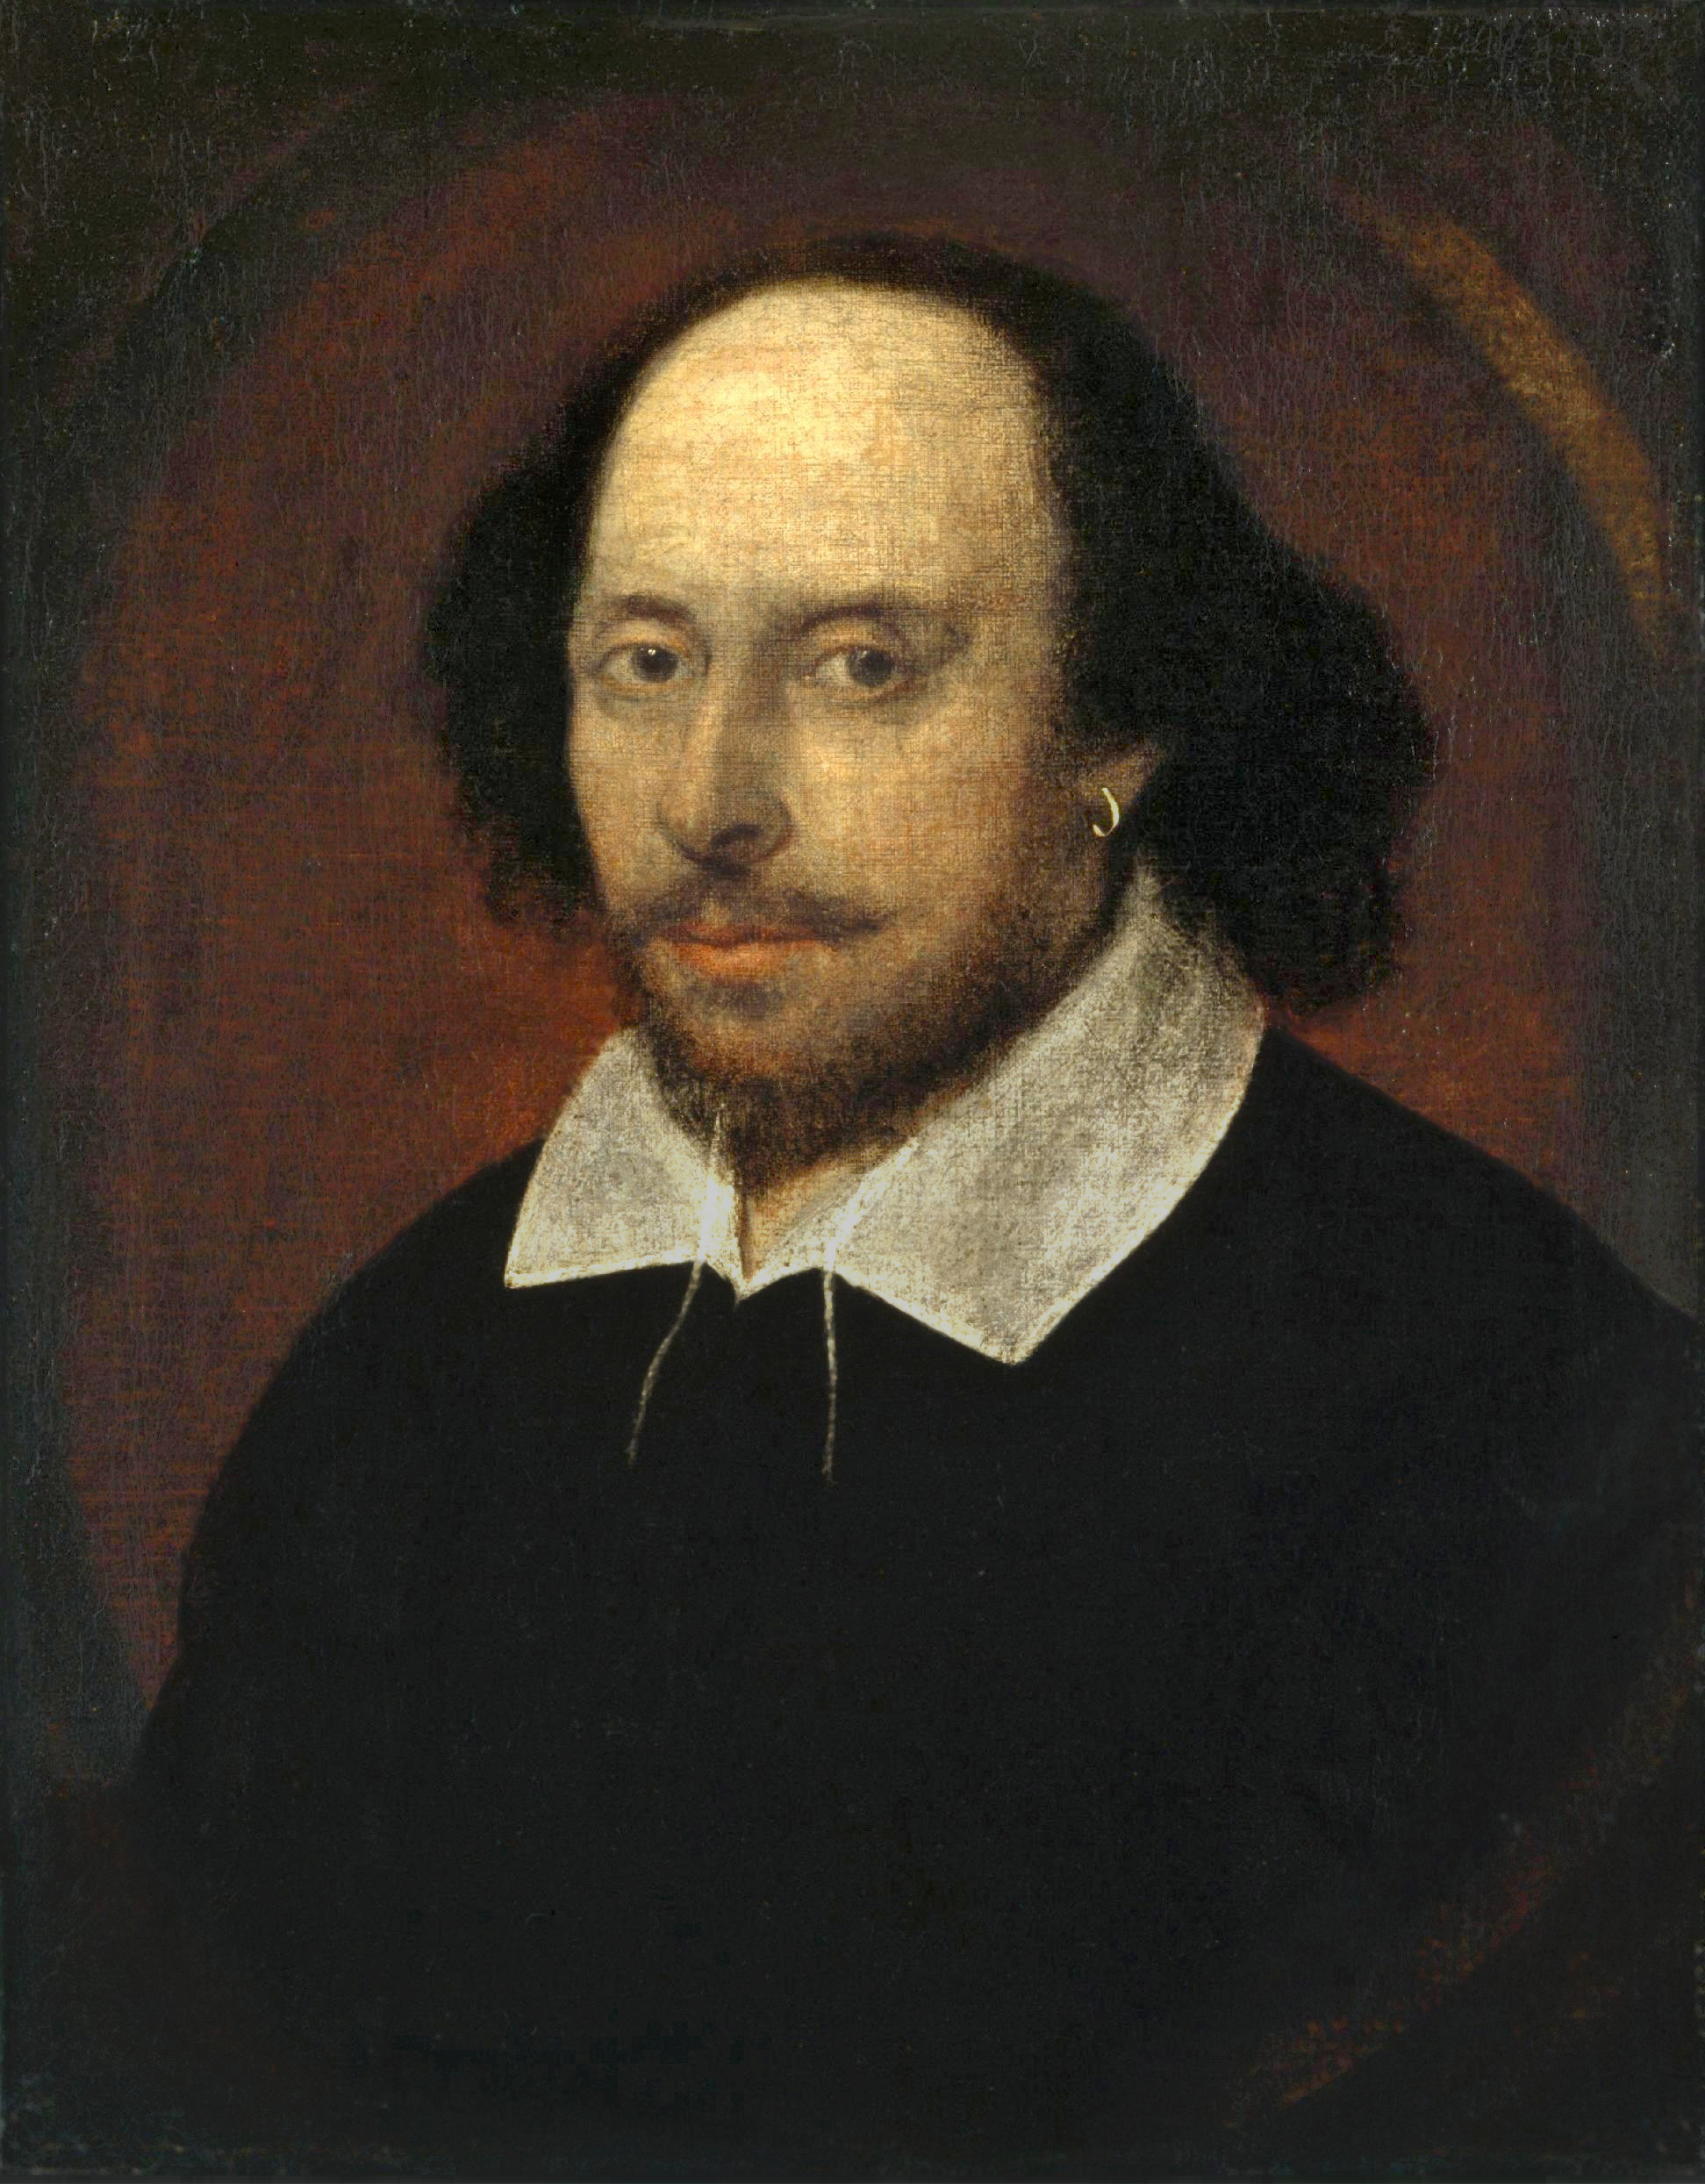 William Shakespeare - Wikipedia